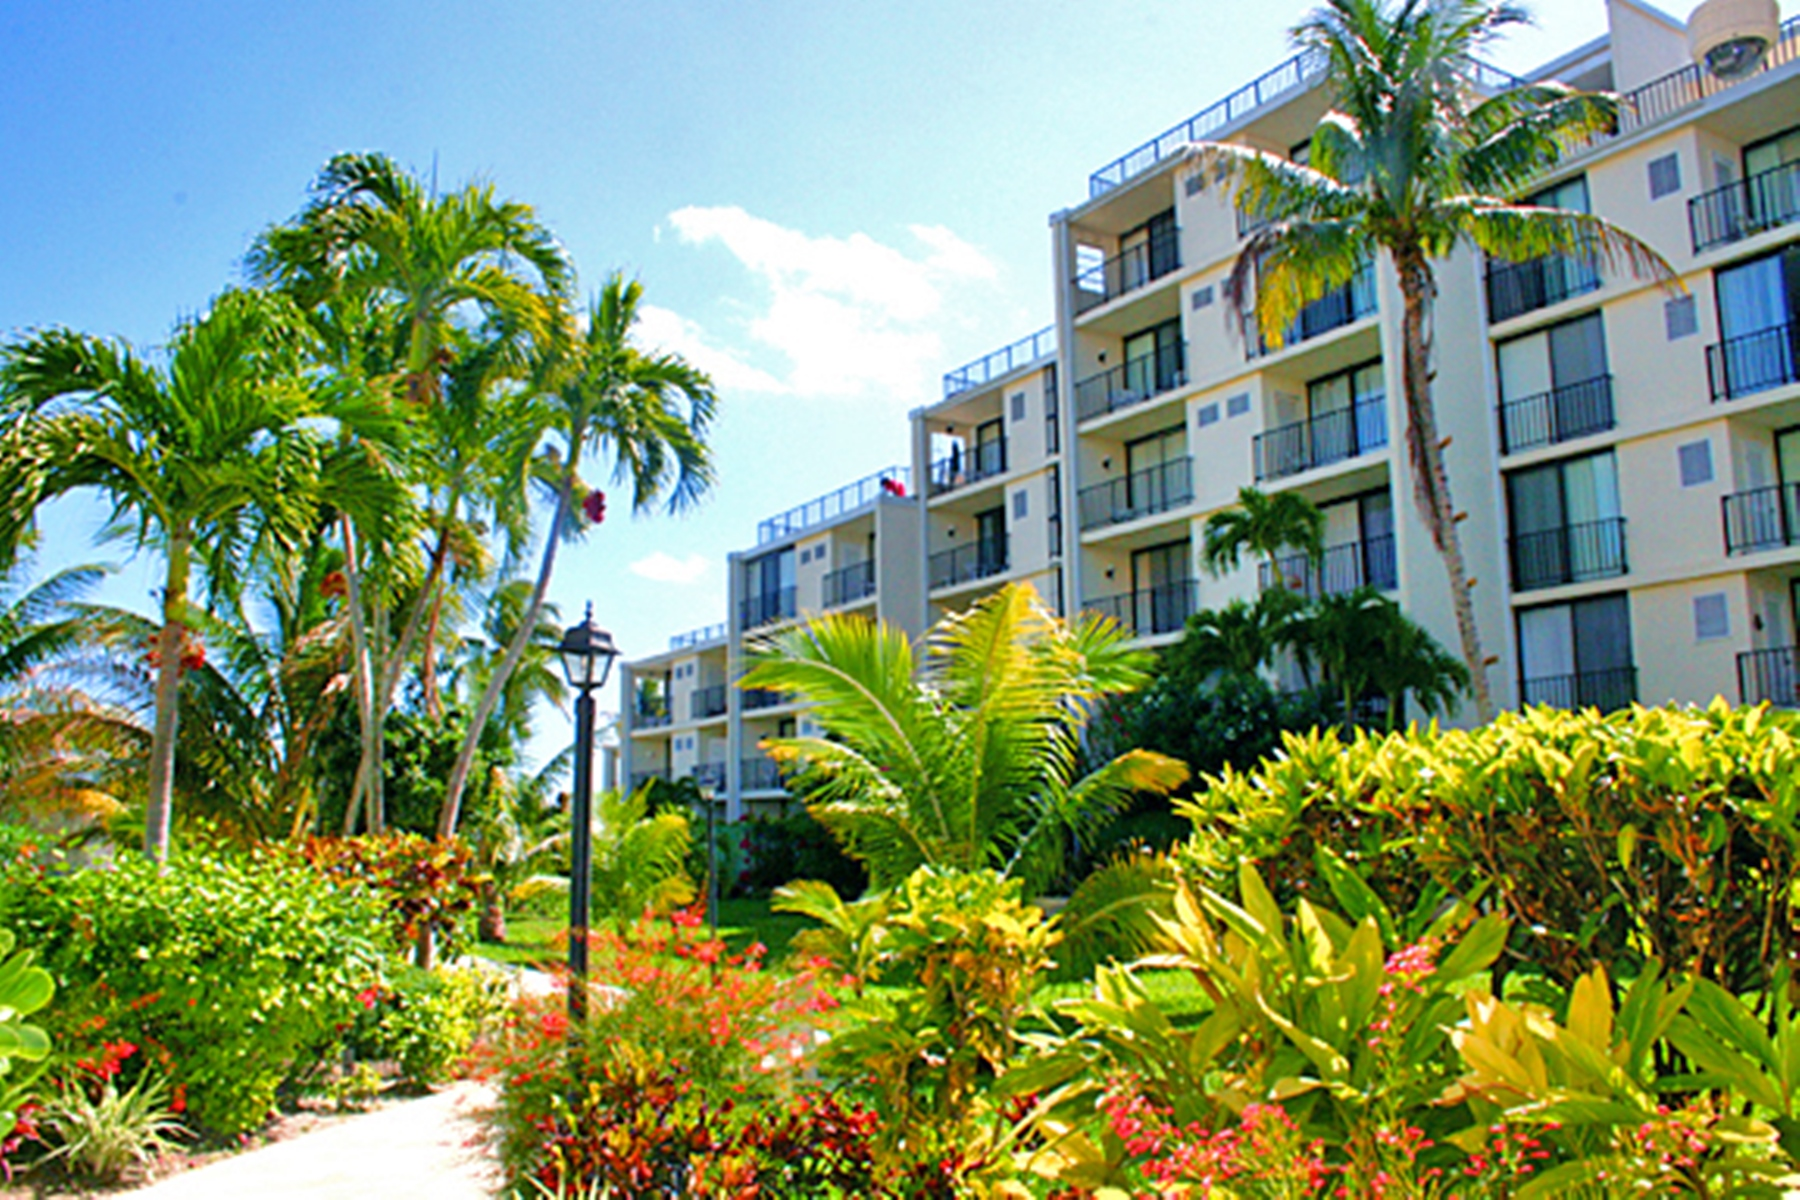 Co-op / Condo for Sale at Corner Unit in Coral Beach with a view! Lucayan Beach West, Grand Bahama, Bahamas